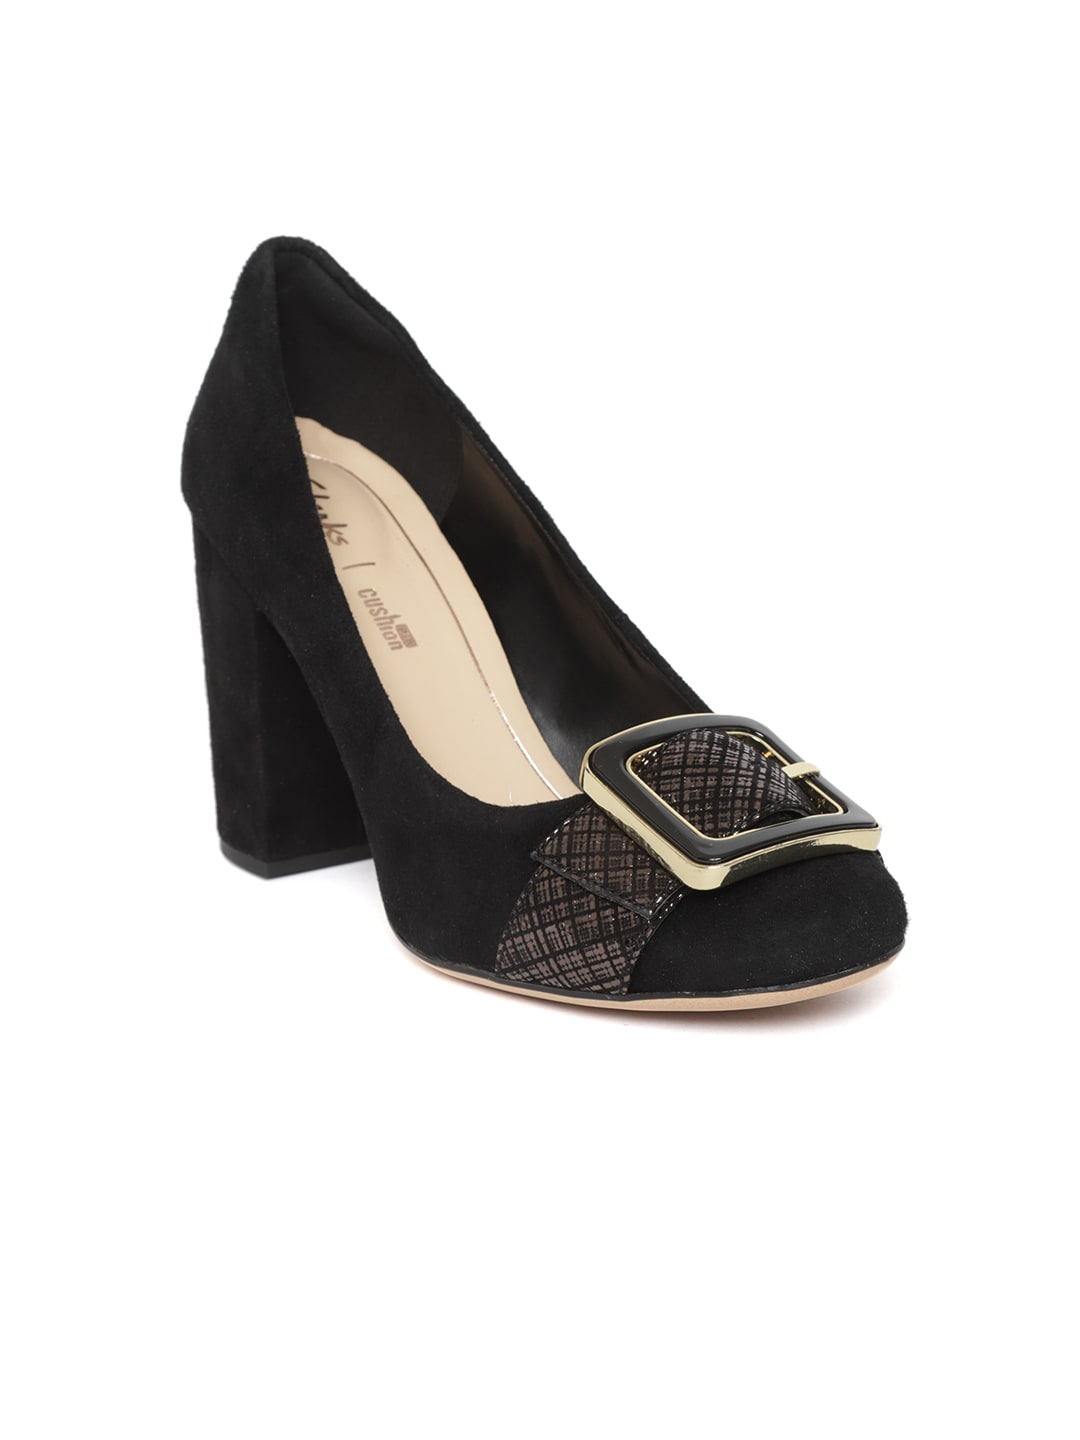 074f5db3ce4a Women s Clarks Shoes - Buy Clarks Shoes for Women Online in India